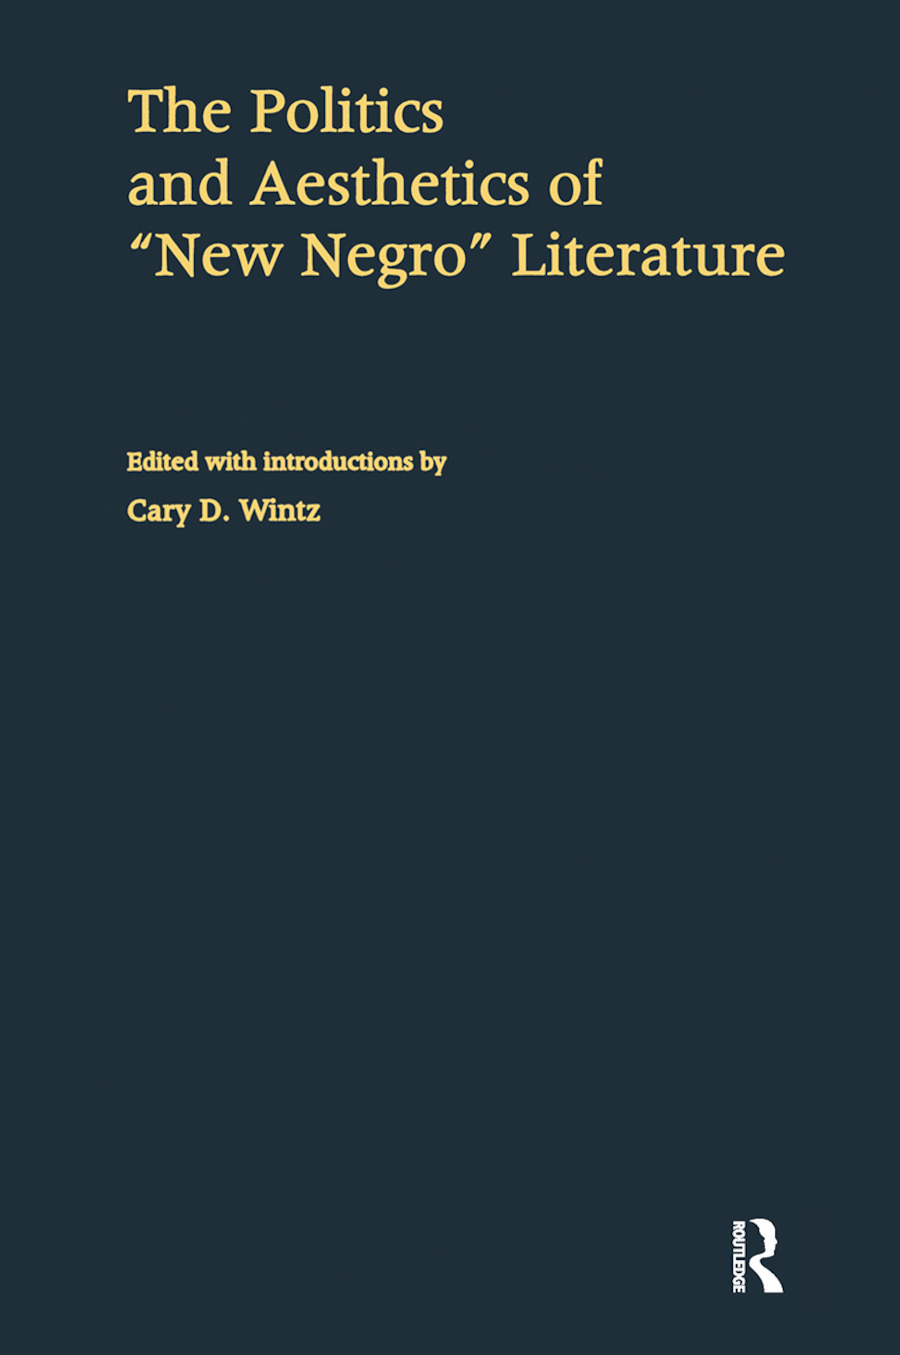 The Politics and Aesthetics of New Negro Literature: 1st Edition (Hardback) book cover